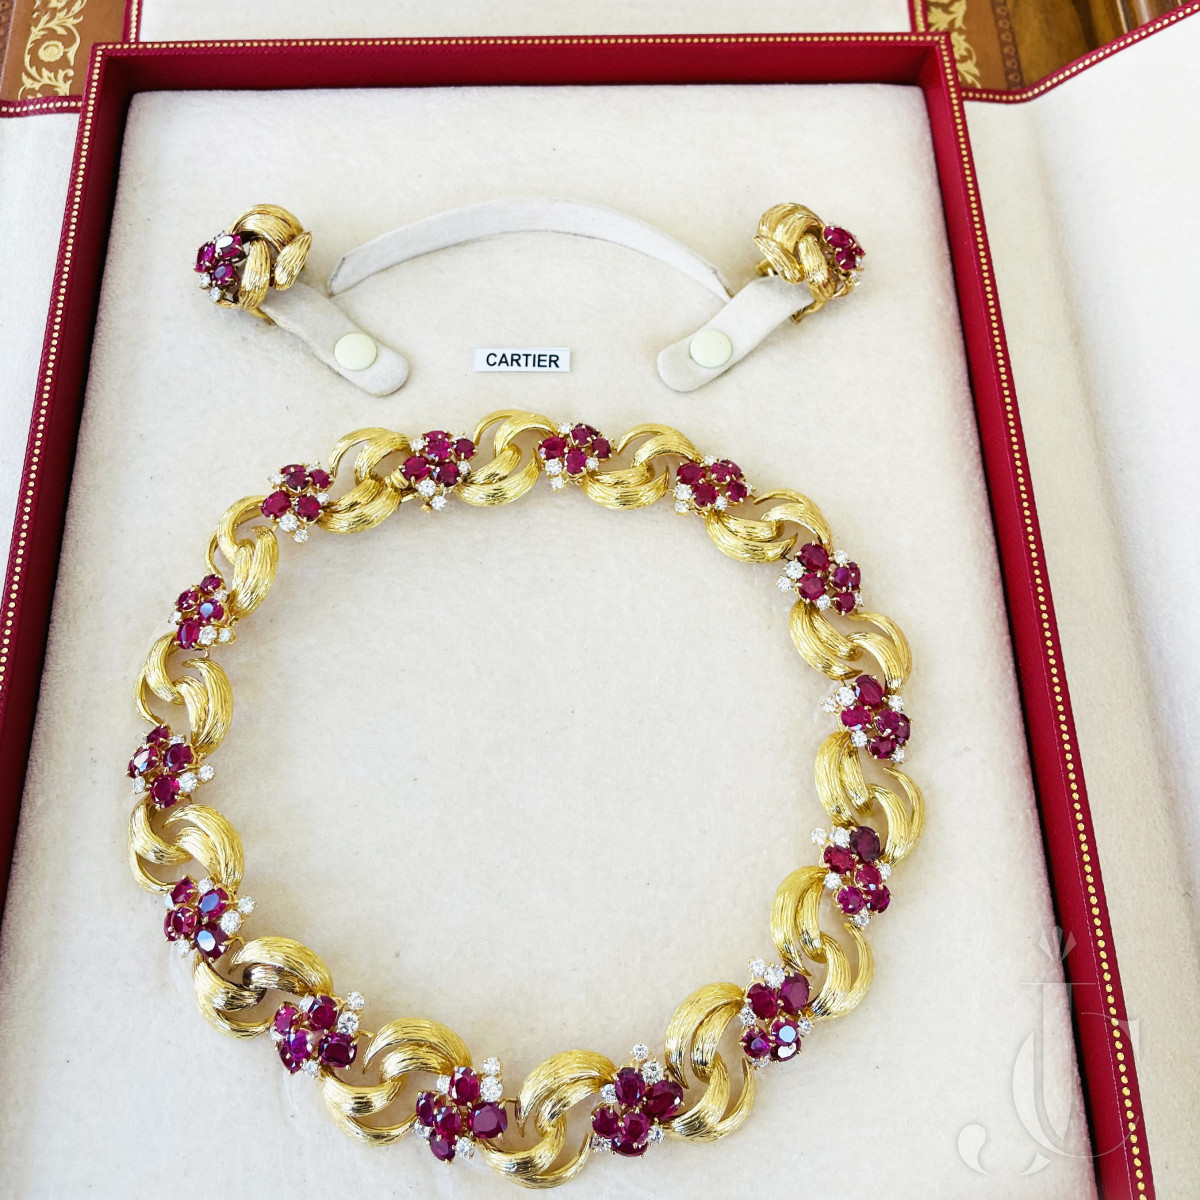 18kt Ruby and Diamond Necklace and Earrings, Cartier - Paris, circa 1955